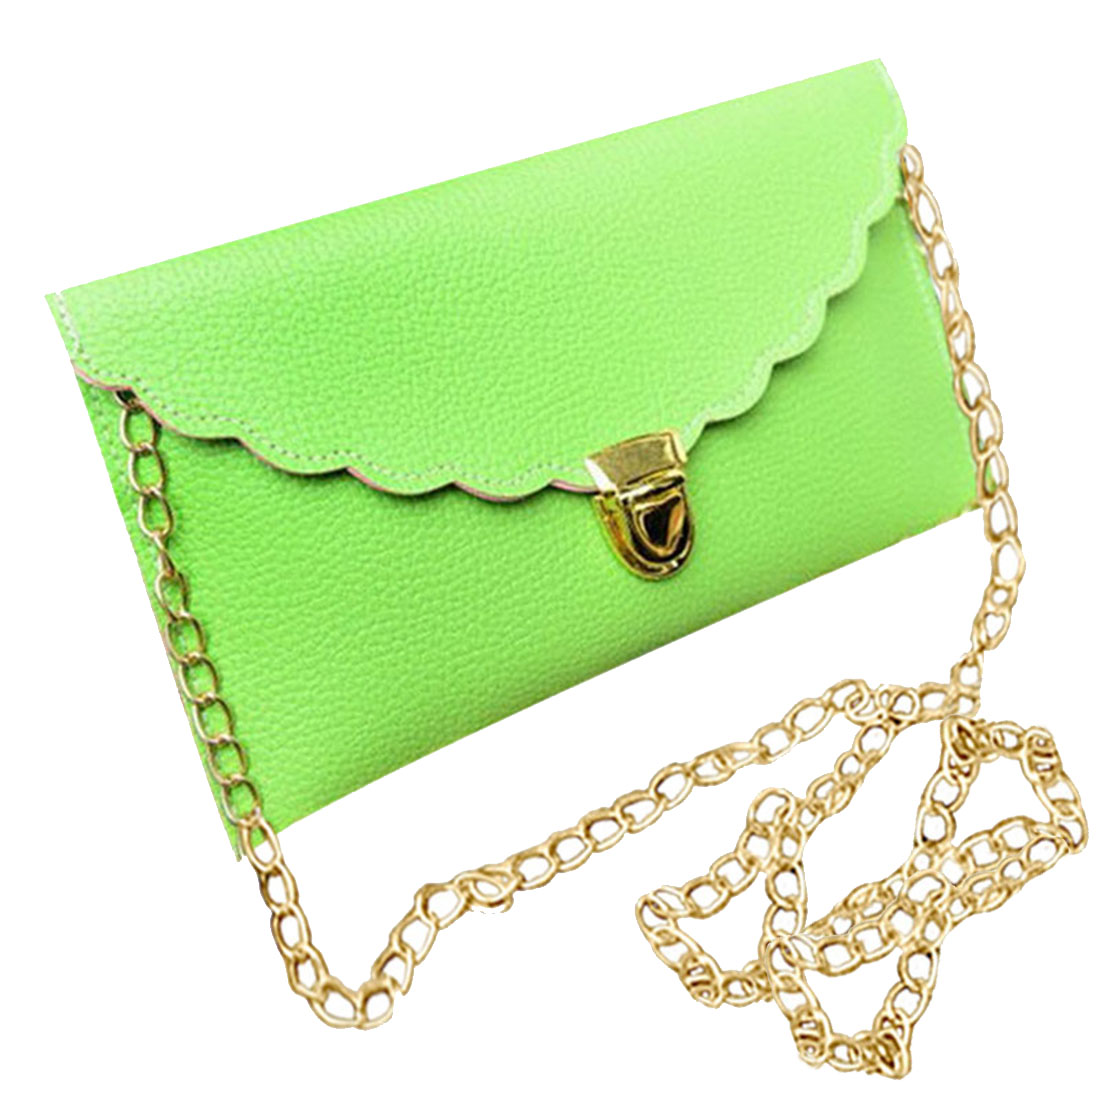 Women's Bags Luggage & Bags Ladies Handbag Imitation Leather Shoulder Bag Fashion Wallet Long Metal Chain Lady Handbag Pure White And Translucent